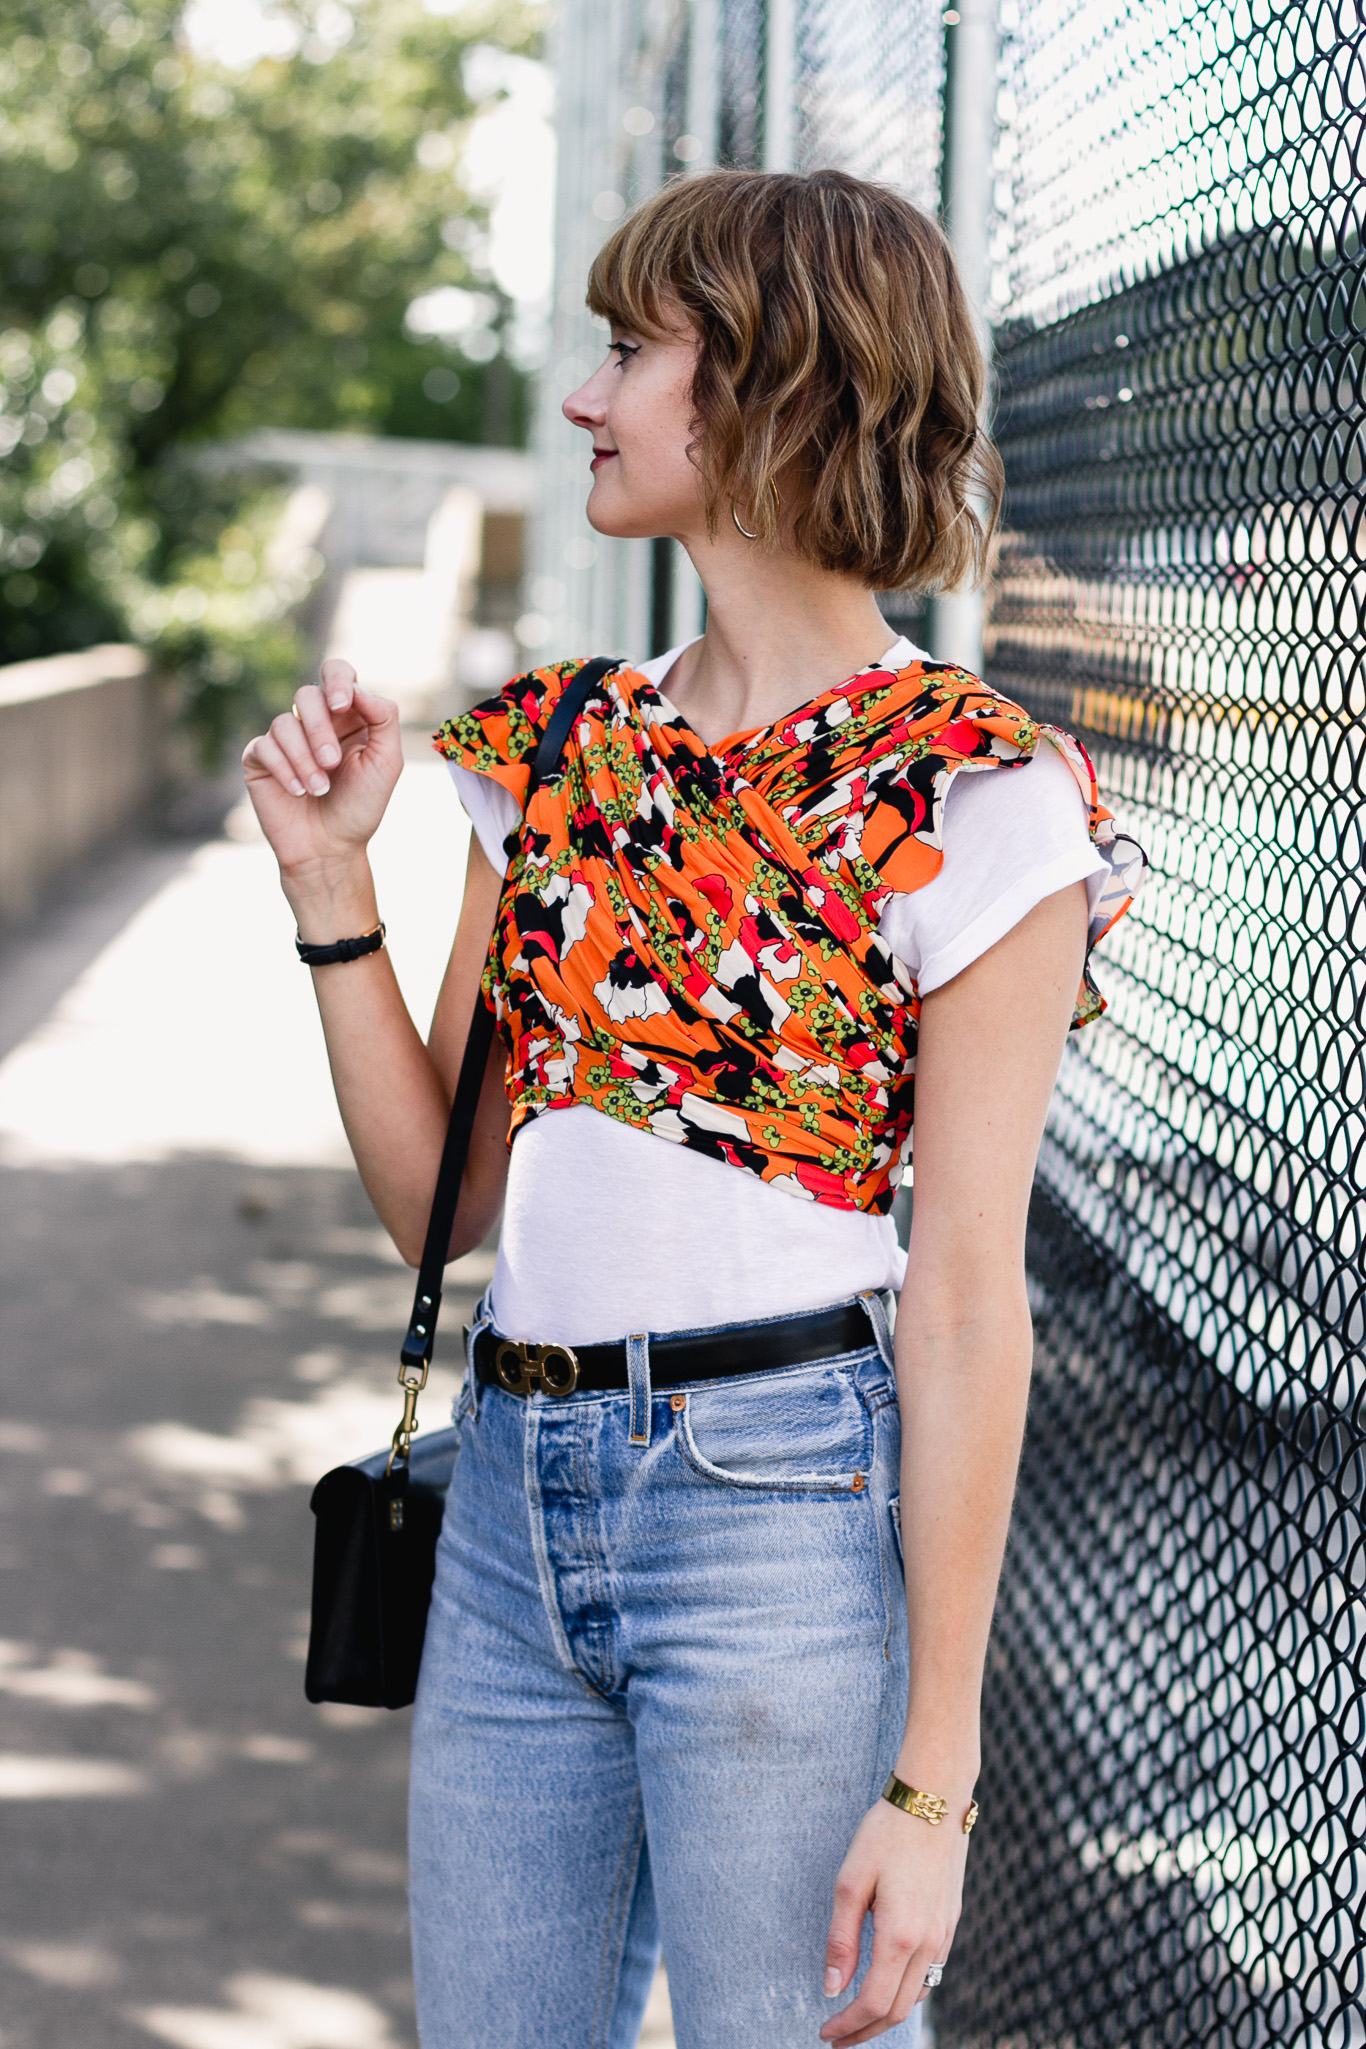 Mango crop top, Ferragamo belt, and Re/Done jeans